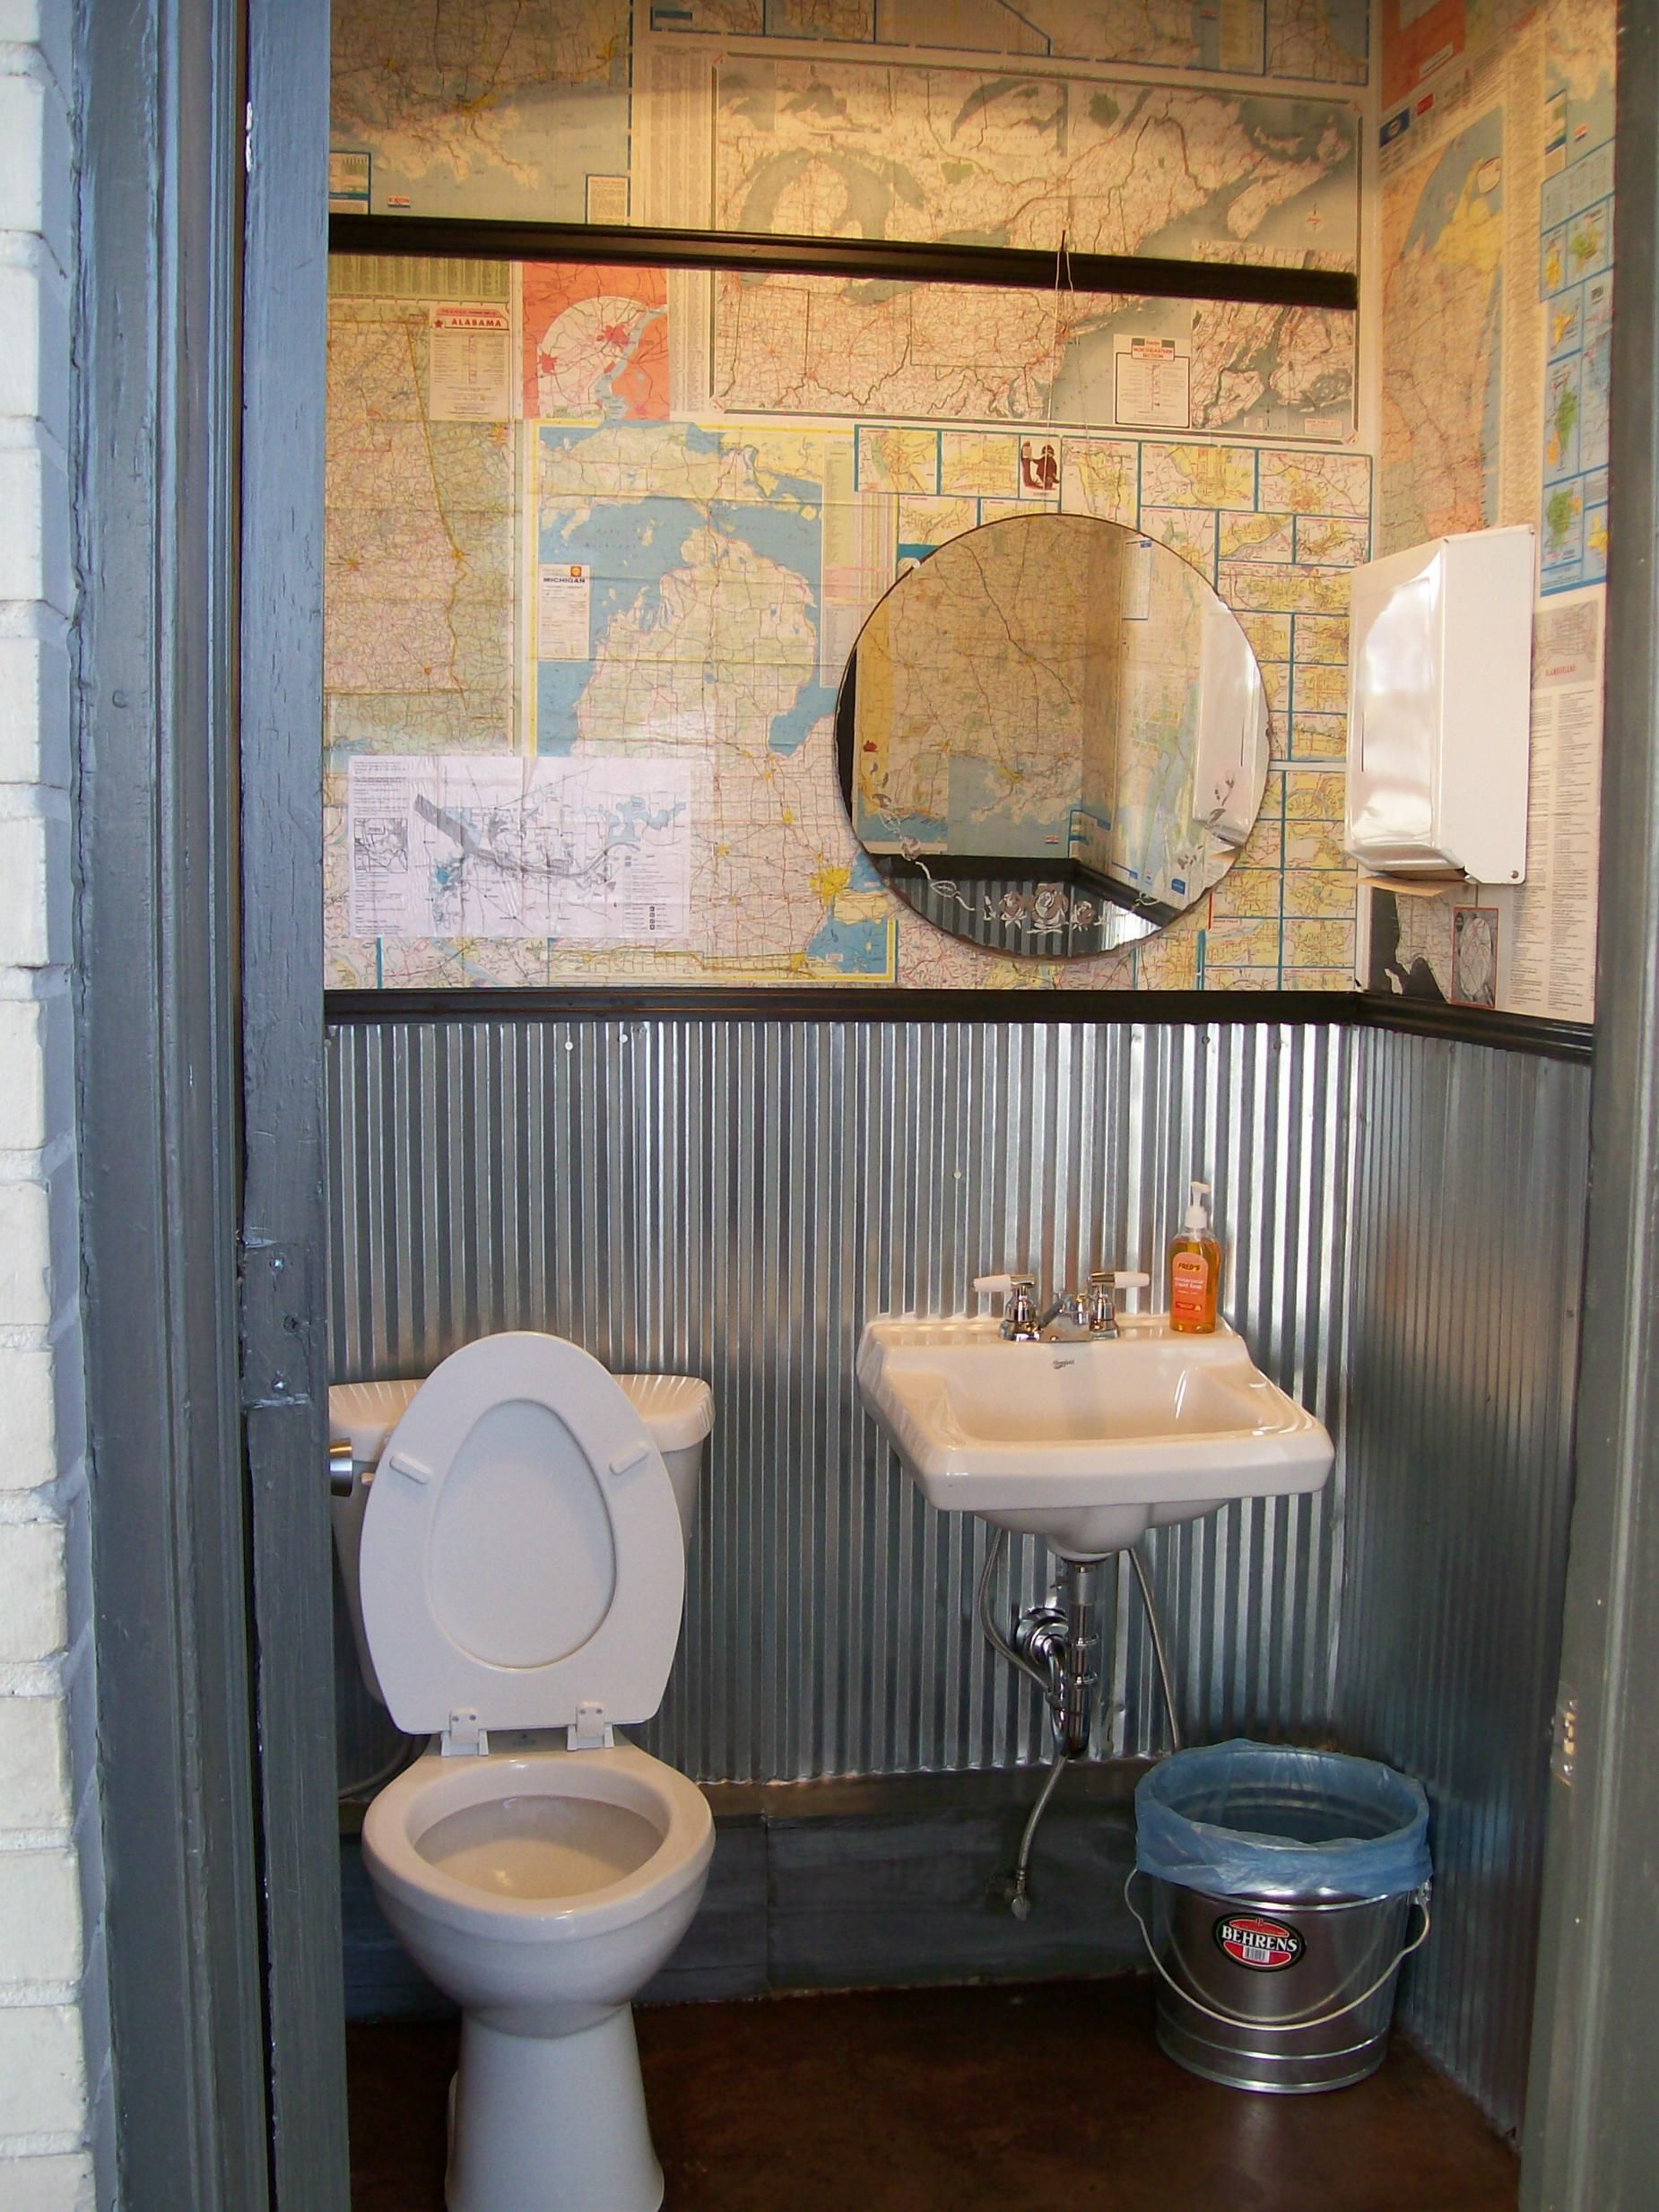 I Remodeled The Bathrooms At Our Family Business. Since It Is A Gas Station,